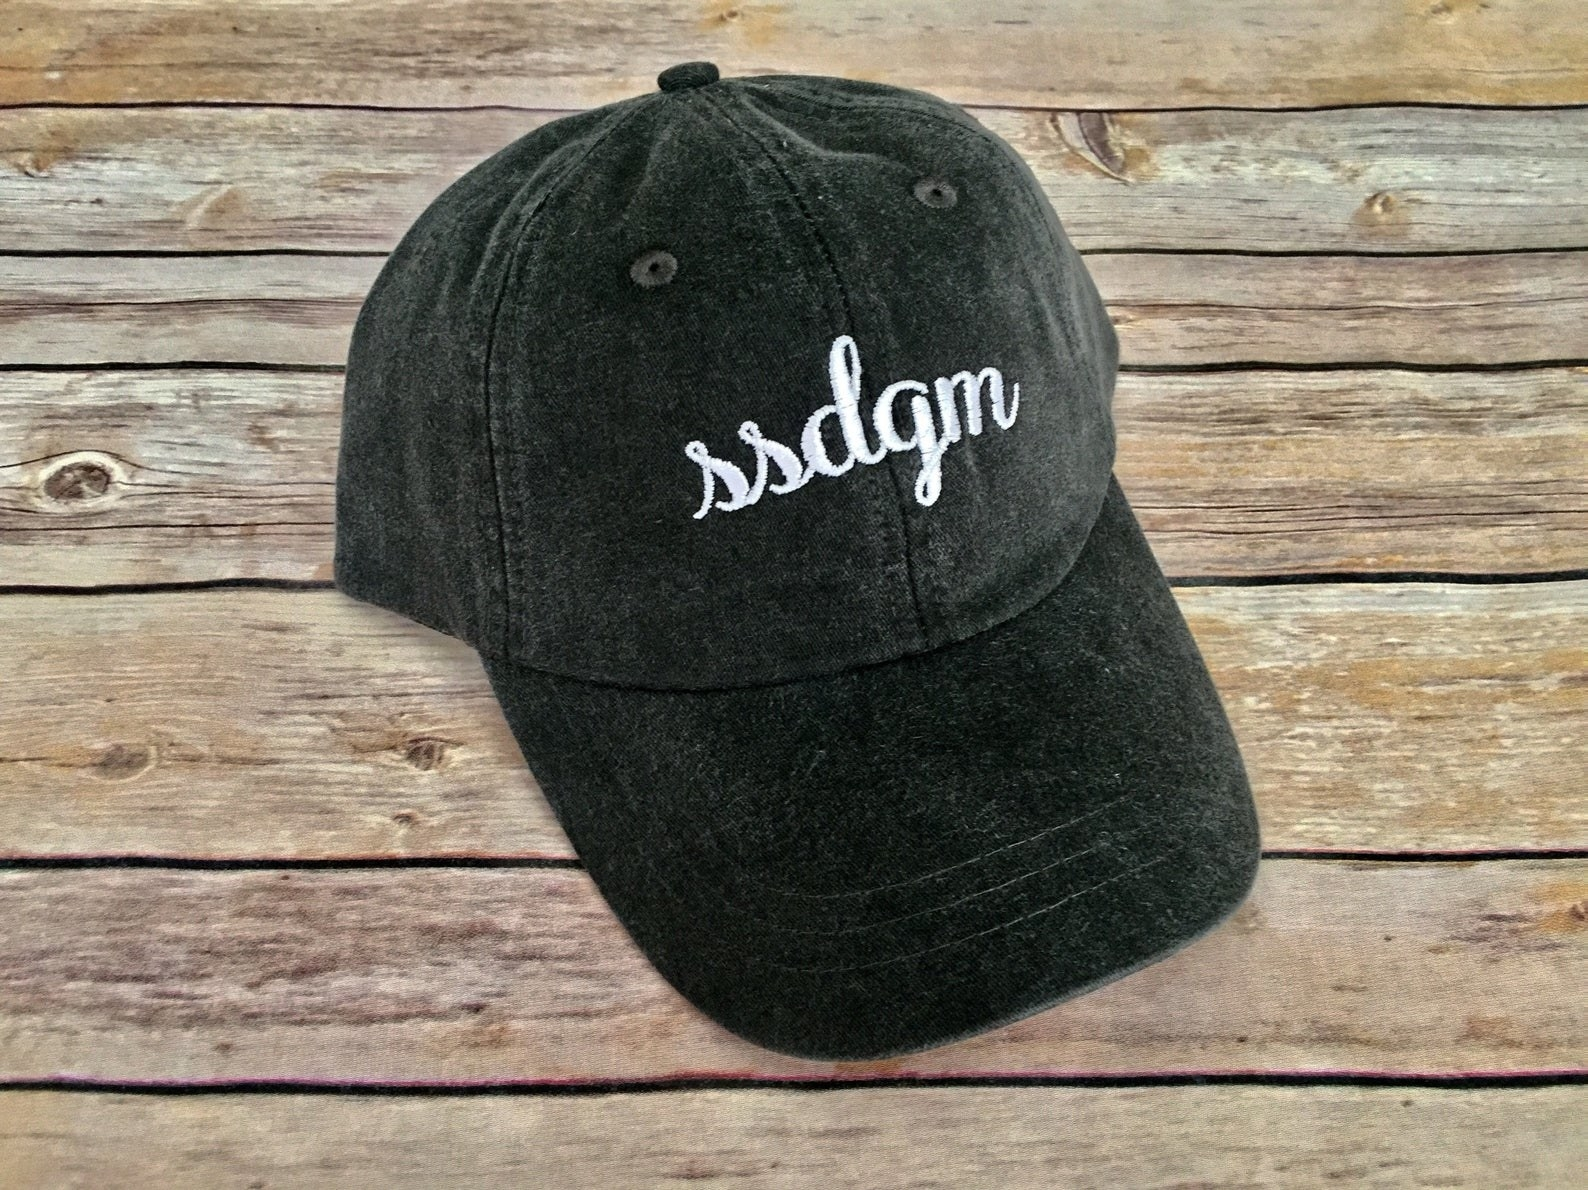 "A black faded baseball cap with white stitching that says ""ssdgm"""